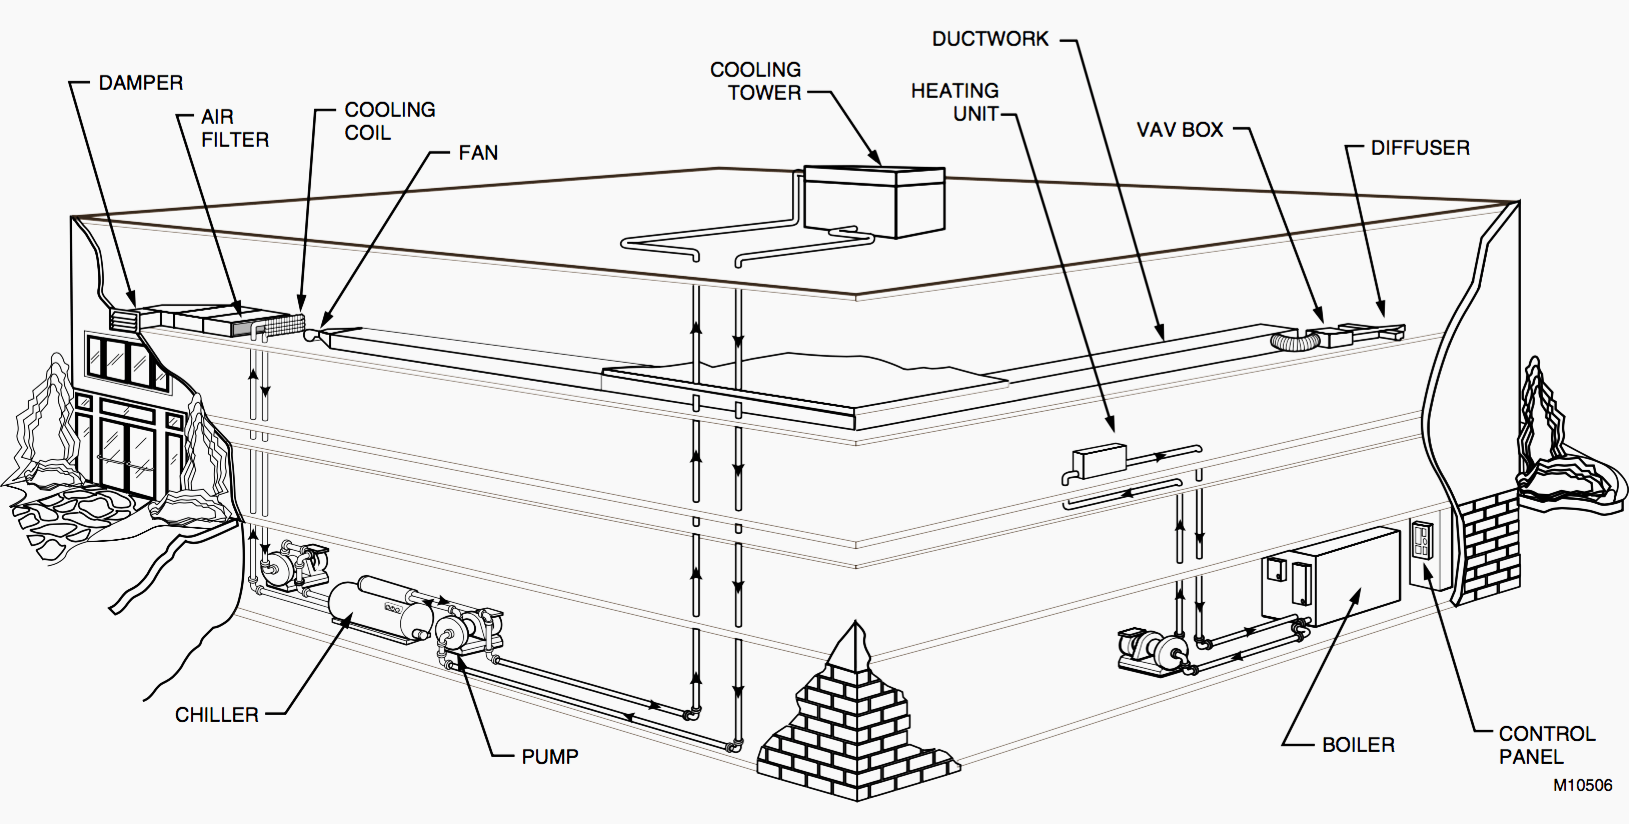 medium resolution of typical hvac system in a small building